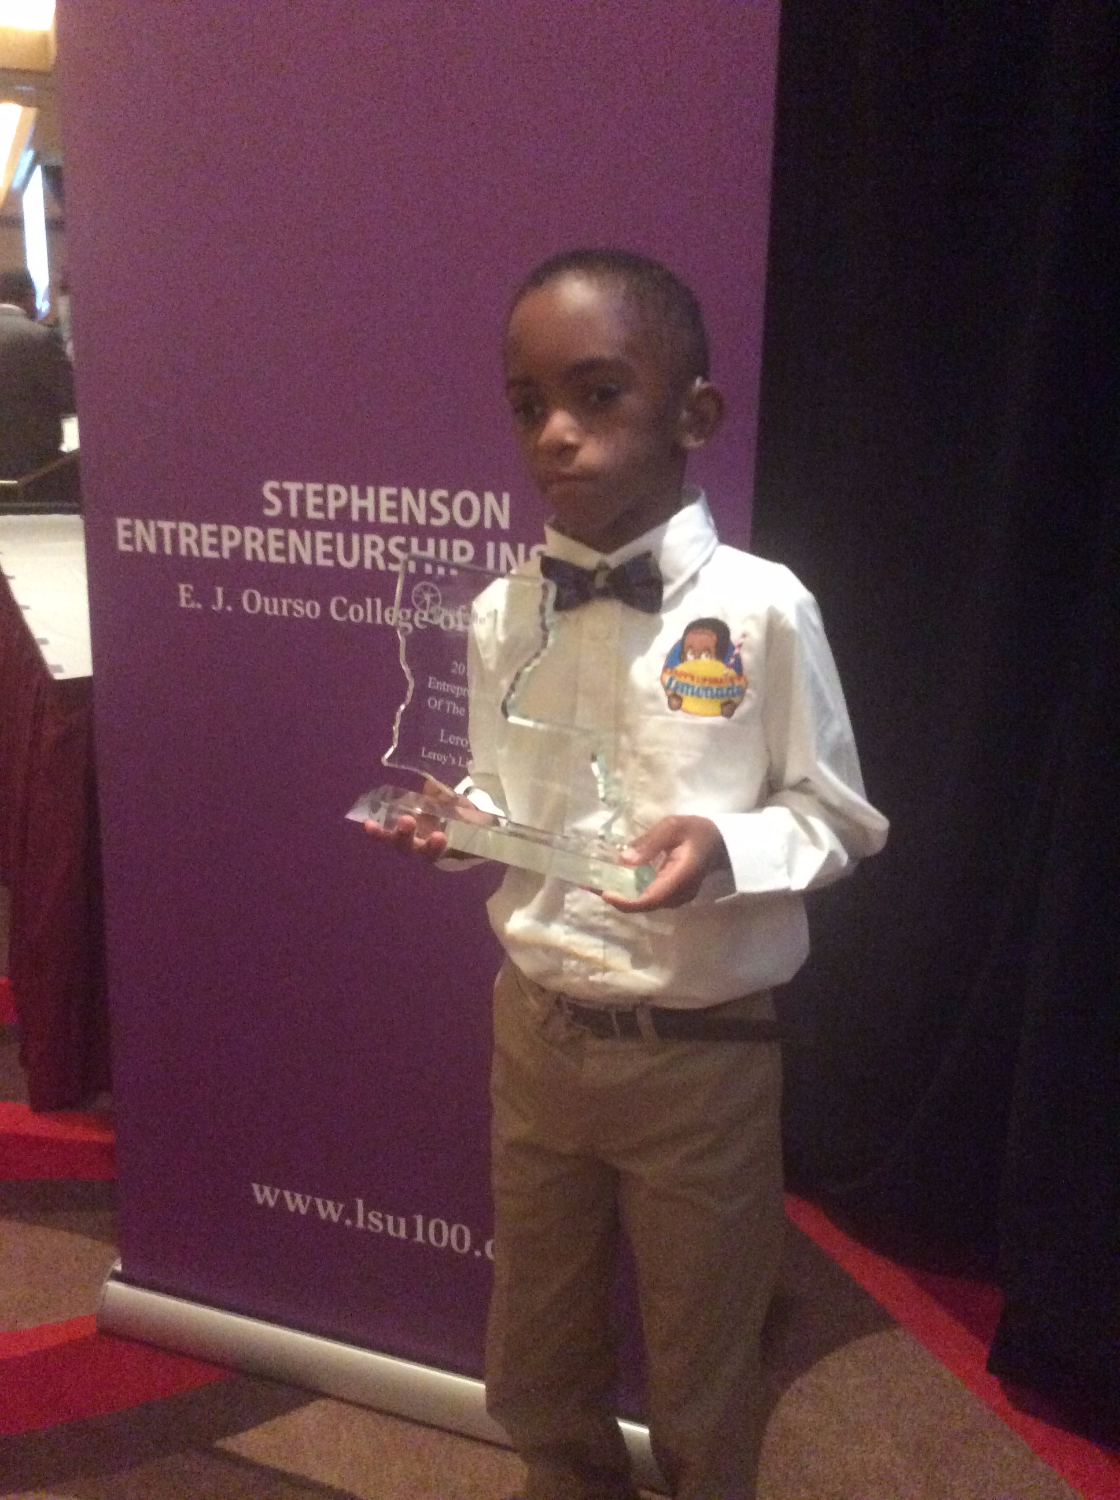 Entrepreneur of the Year at LSU 100